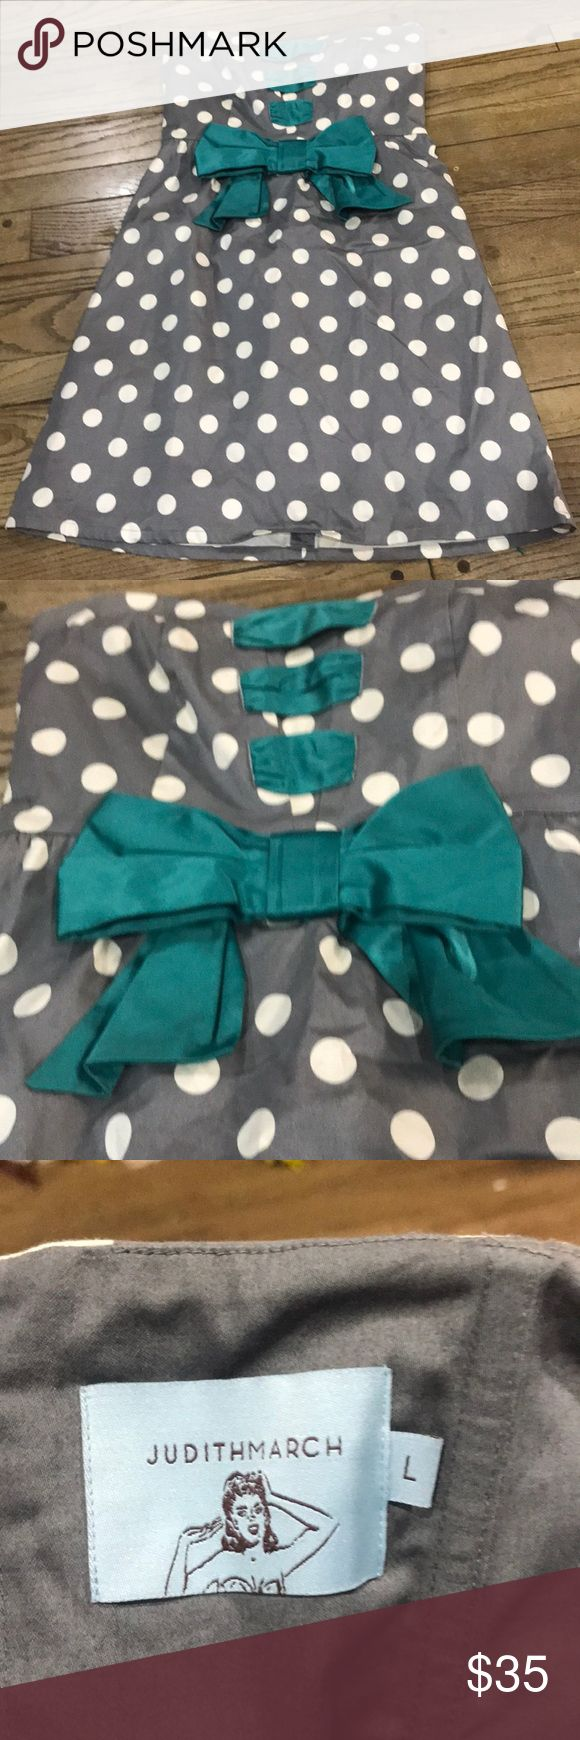 Super Cute Strapless Dress by Judith March Large Super Cute Grey with white polka dots Turquoise bow and accents on front Size Large Judith March Dresses Strapless